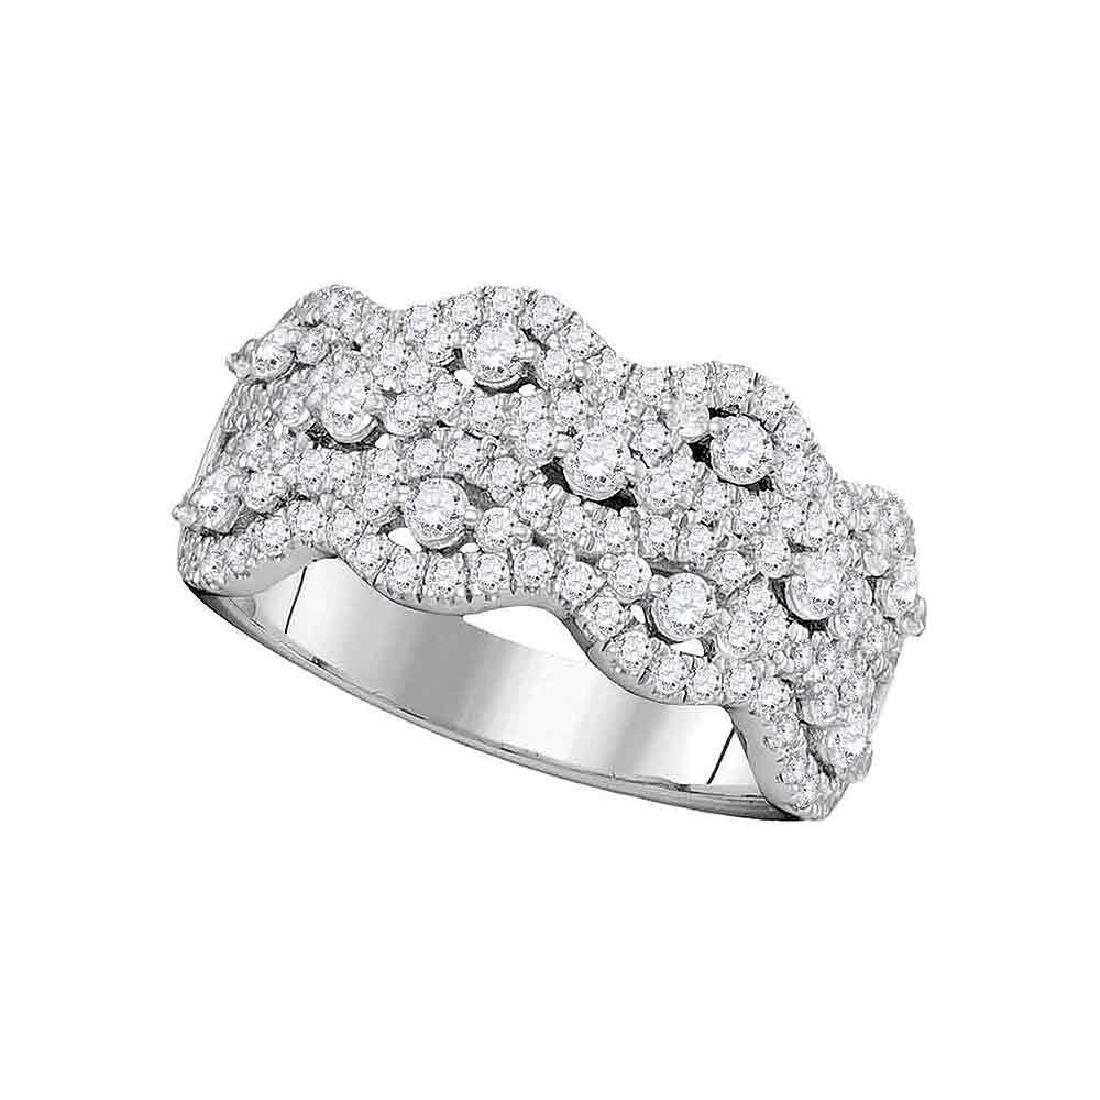 1.13 CTW Pave-set Diamond Strand Cocktail Ring 14KT